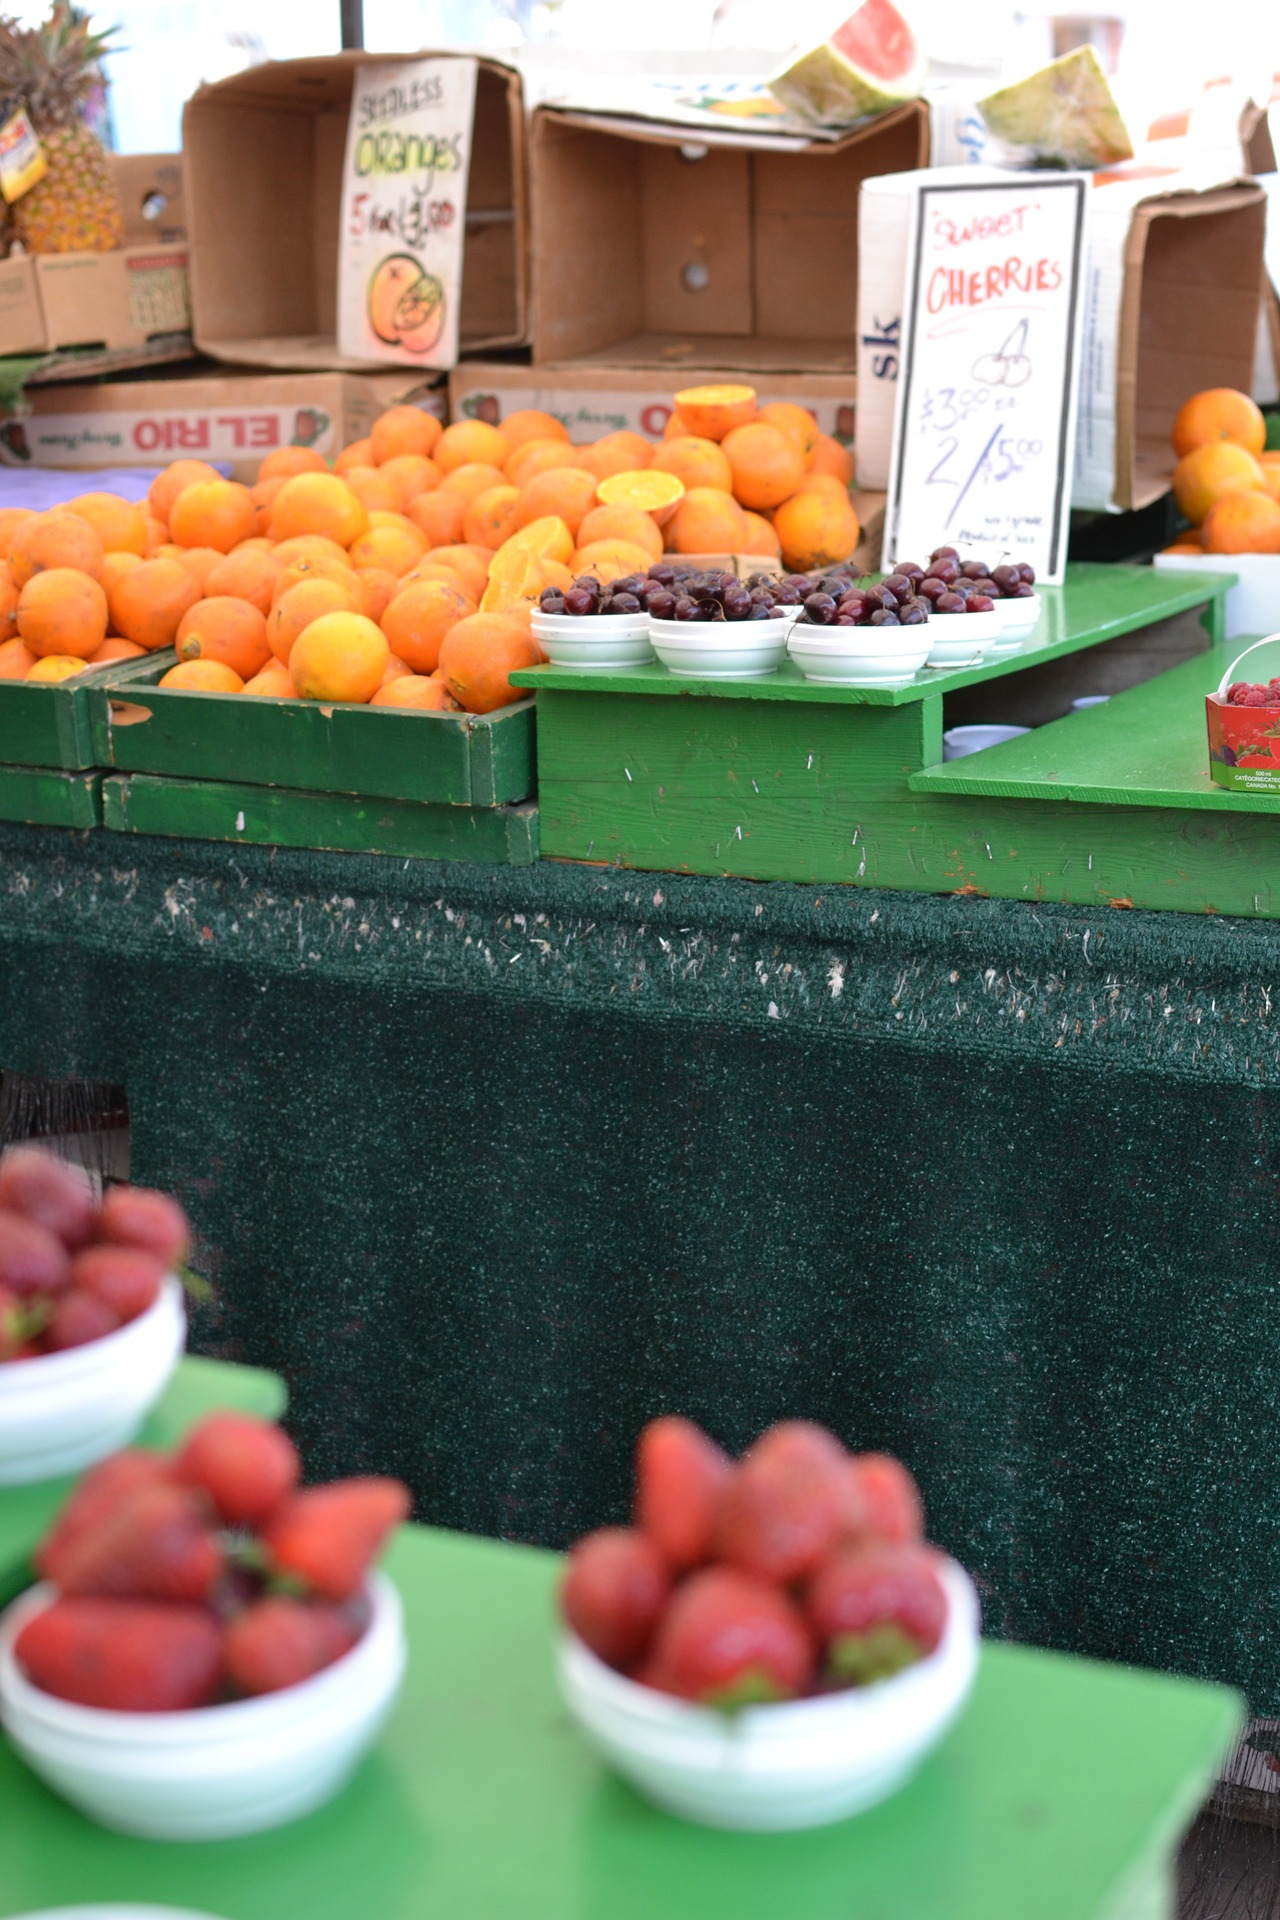 spiceinthecoffee:  Ottawa farmers market yeh Canada was really cool